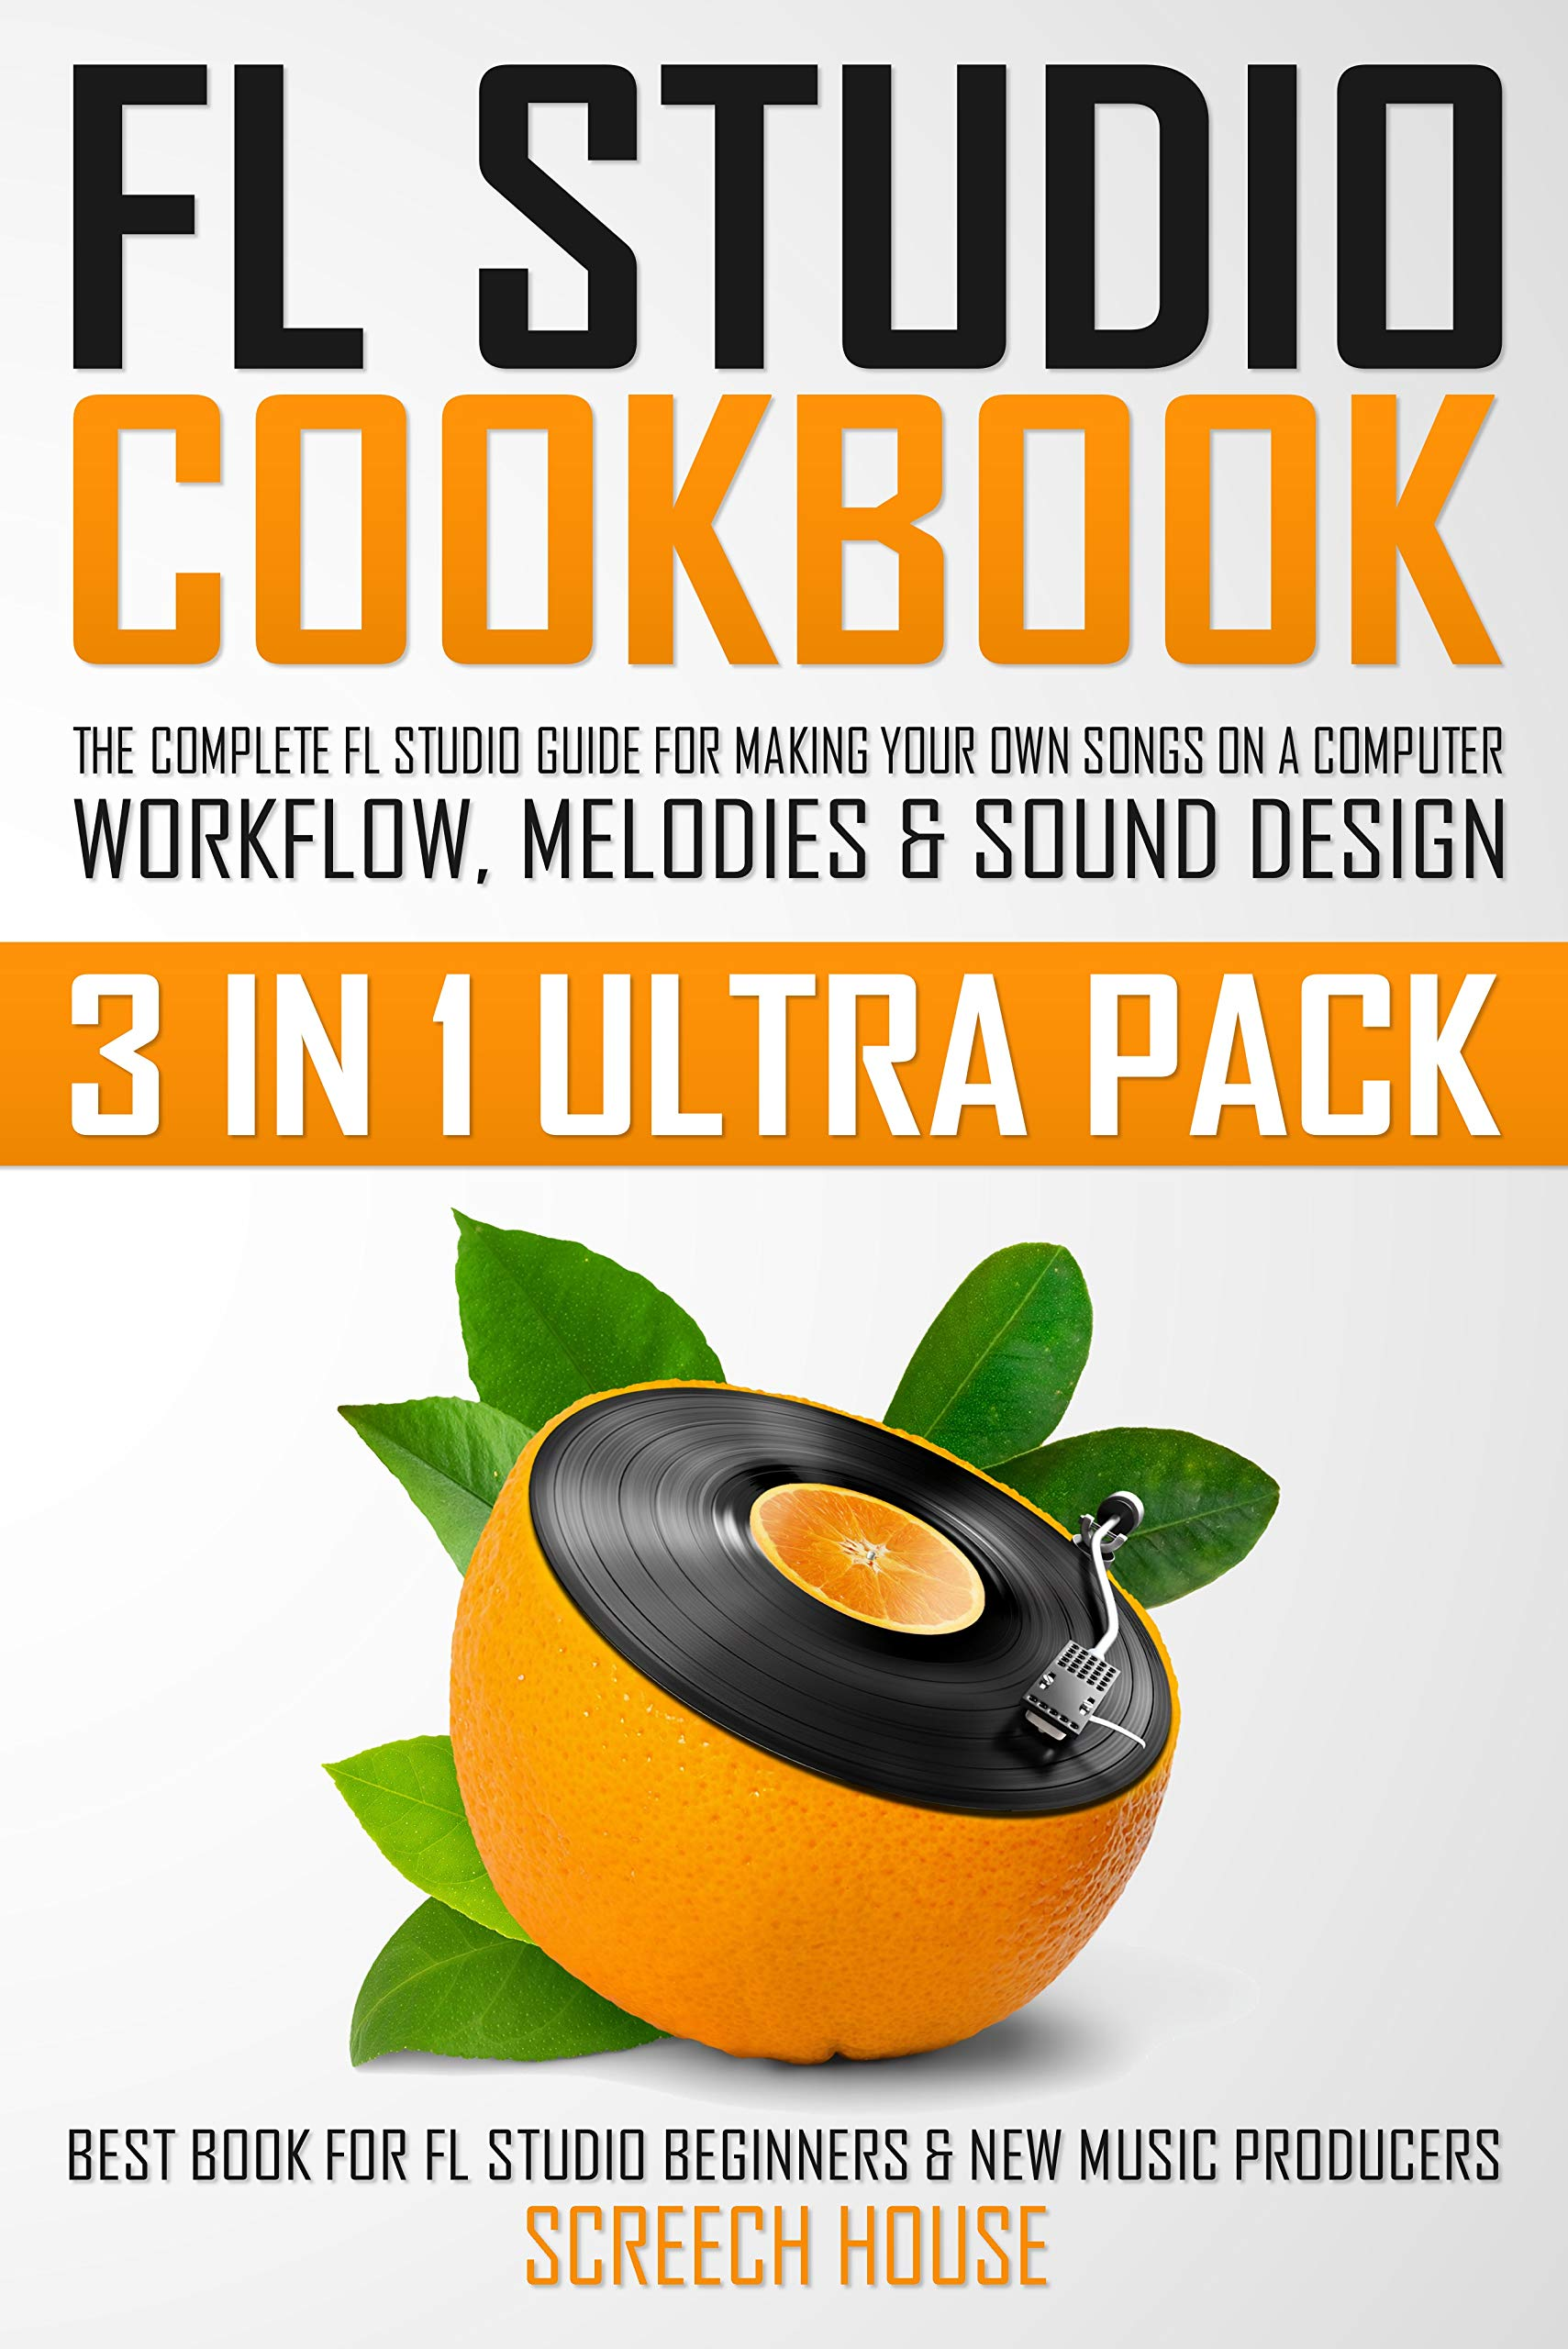 FL STUDIO COOKBOOK (3 IN 1 ULTRA PACK): The Complete FL Studio Guide for Making Your Own Songs on a Computer: Workflow, Melodies & Sound Design (Best Book ... & New Music Producers) por Screech House